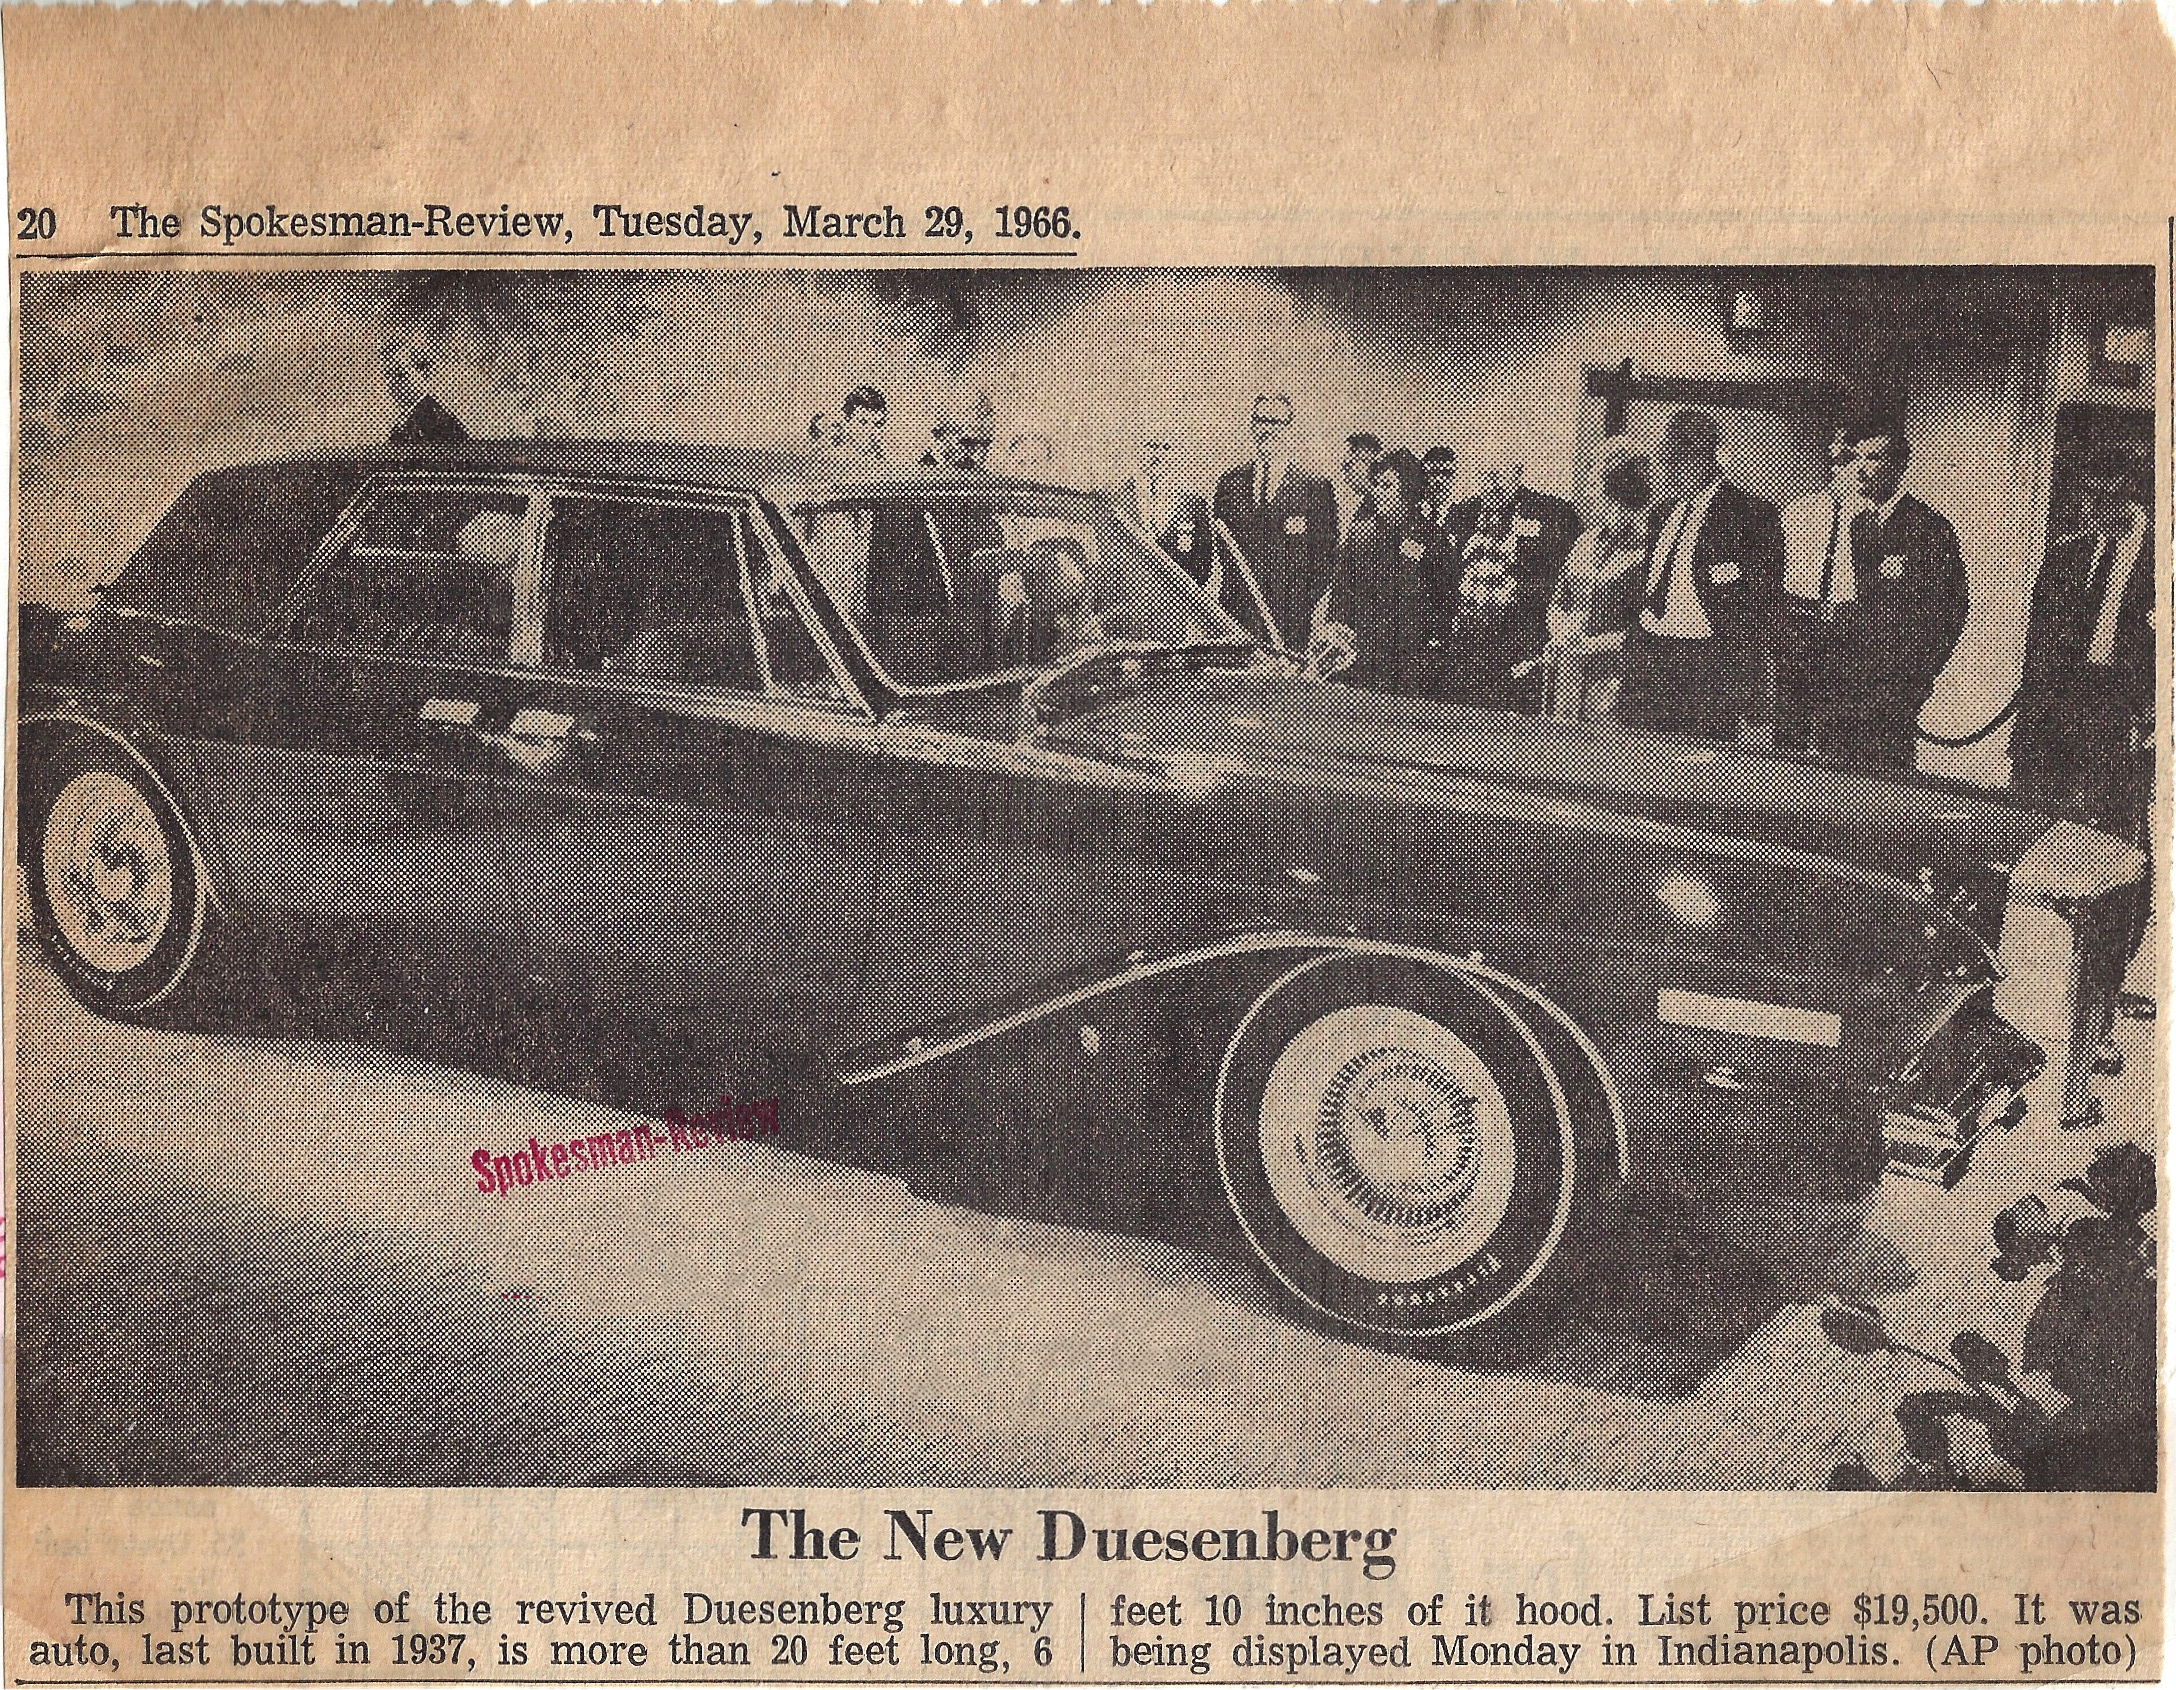 The 1966 Duesenberg in the Spokesman-Review newspapper